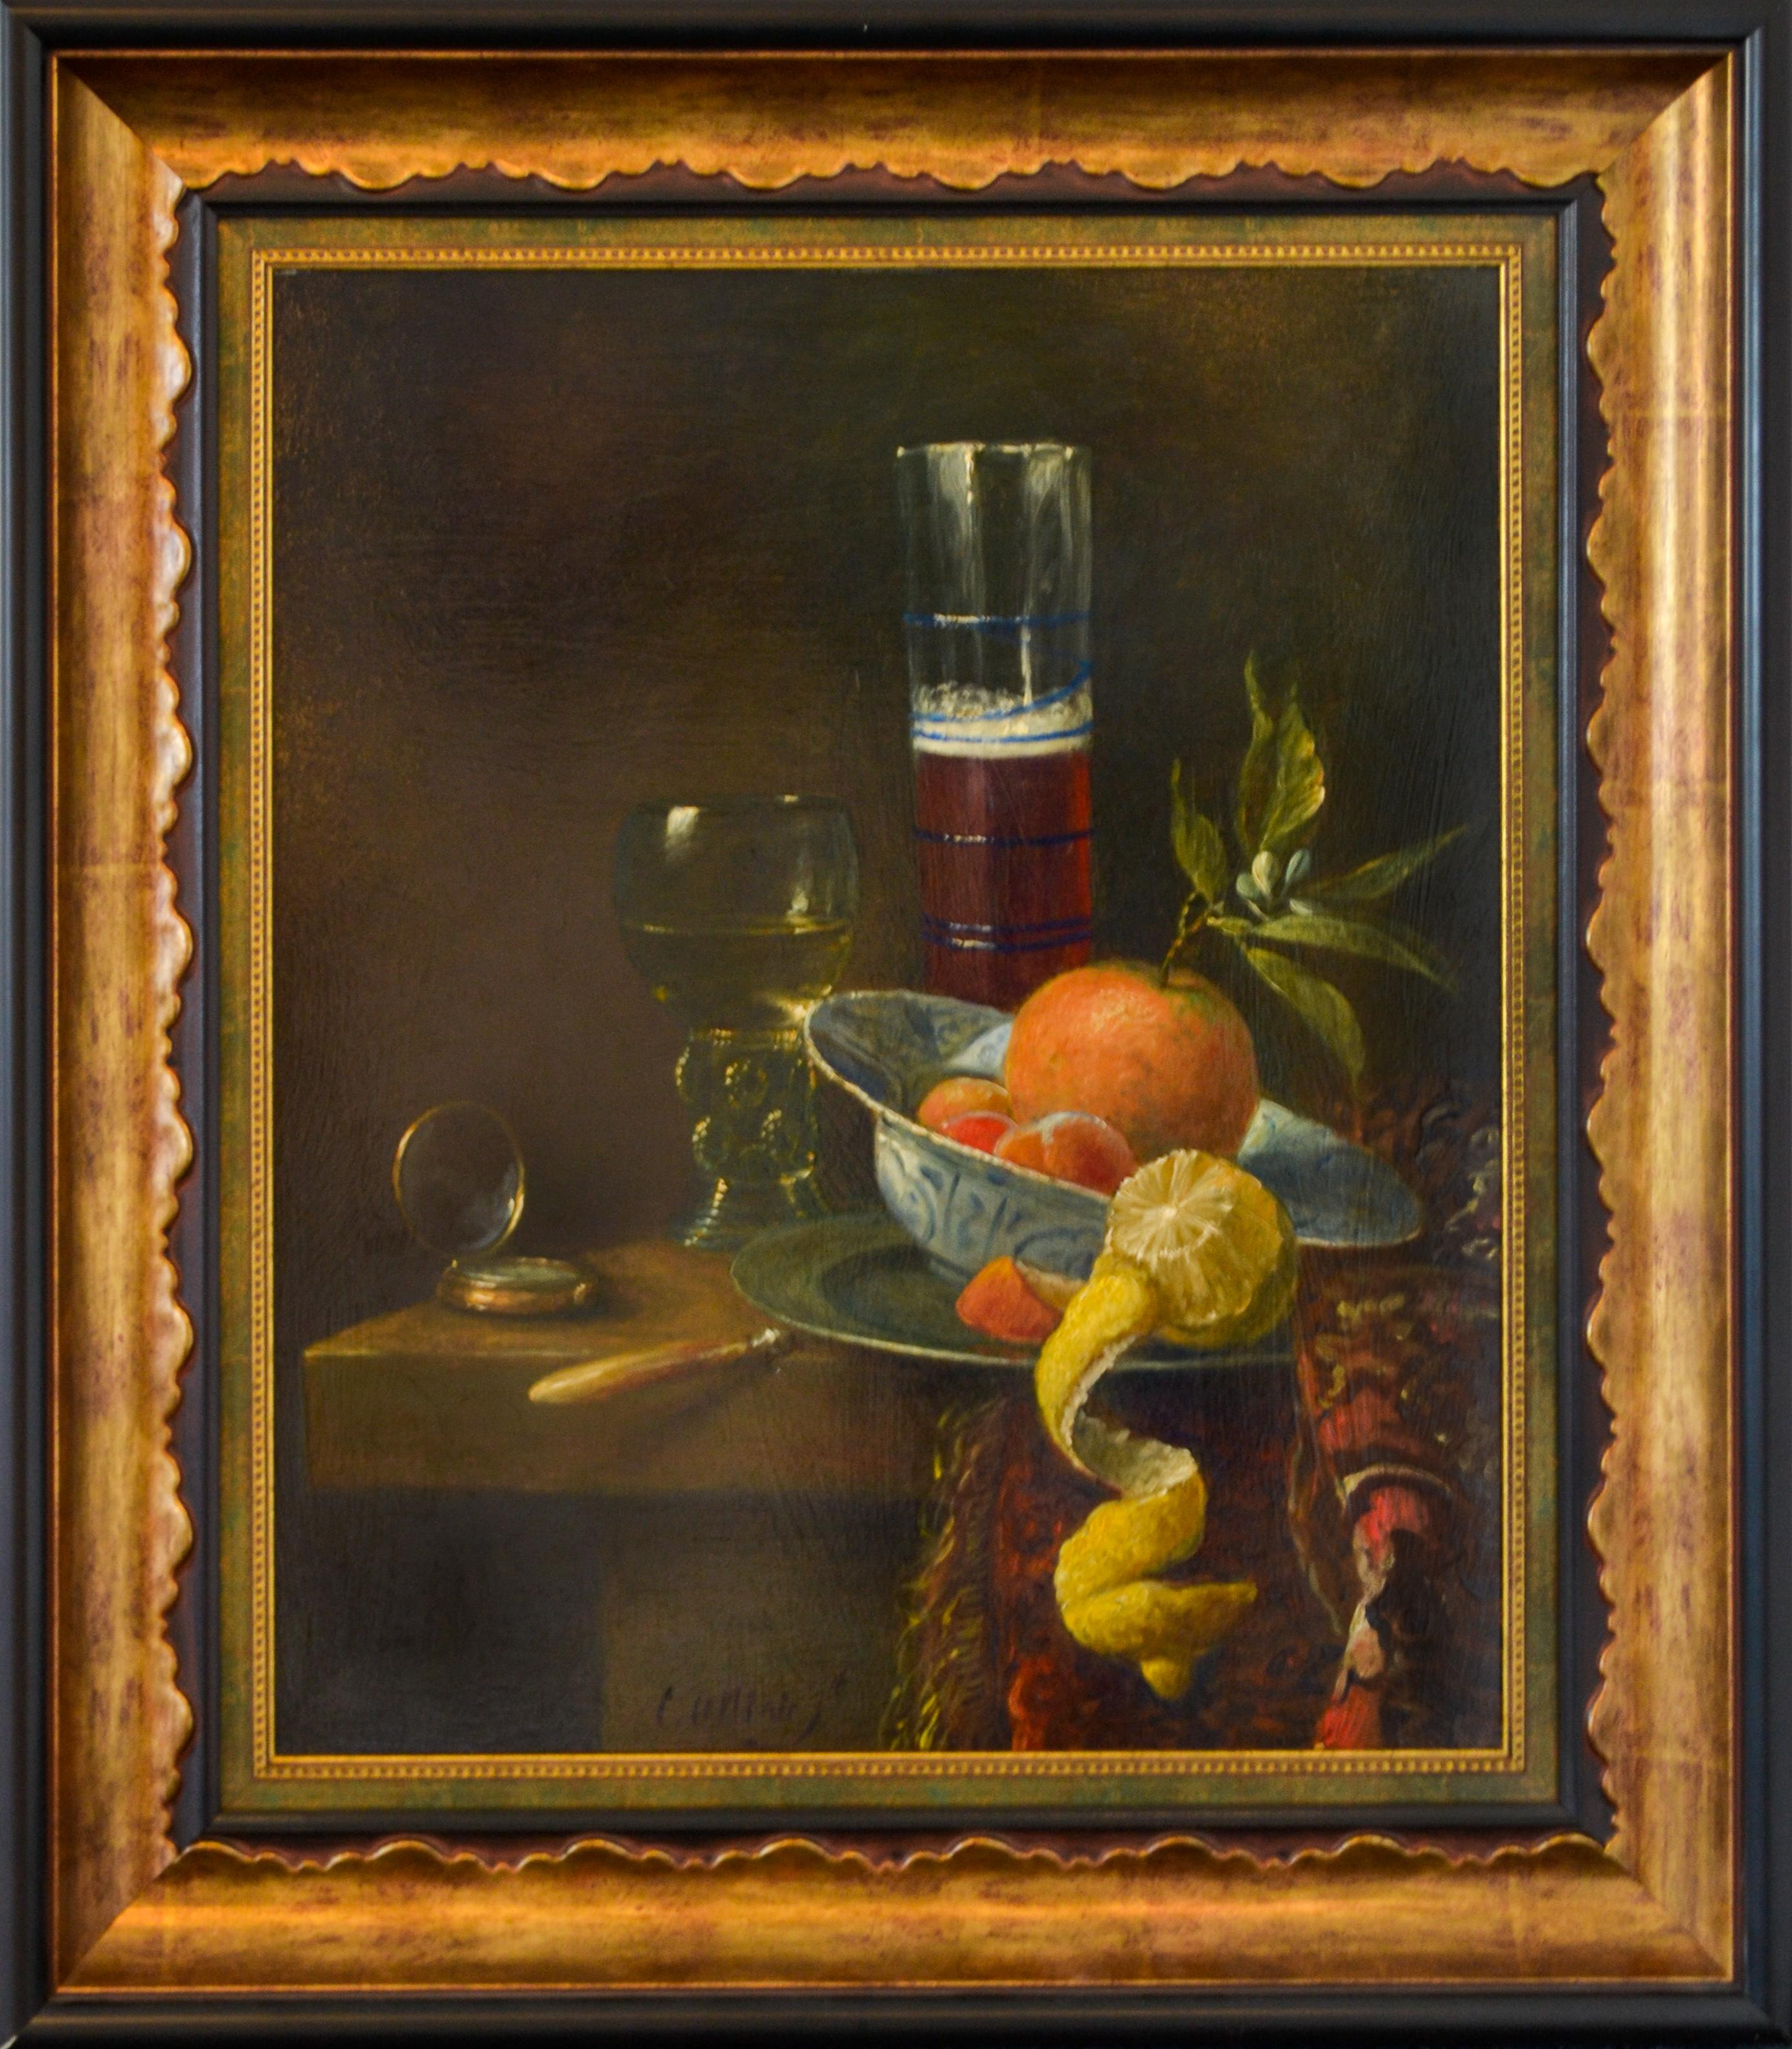 Peeled Lemon On The Table - Classic Style Oil Painting by Cornelis Le Mair